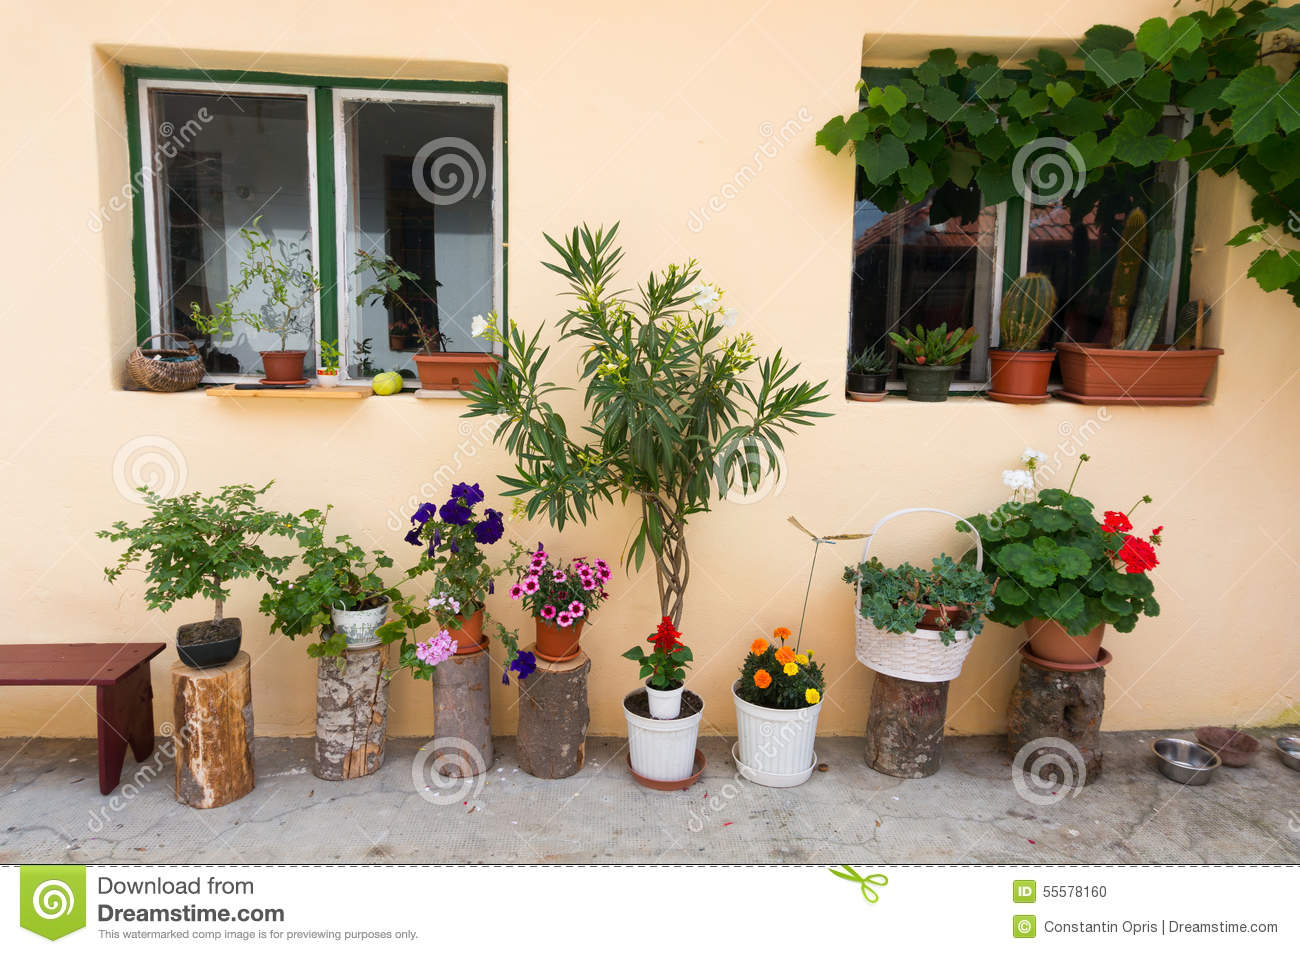 How To Make Beautiful Flower Pots At Home Home Flower Pots Decoration Stock Photo Image Of Growm